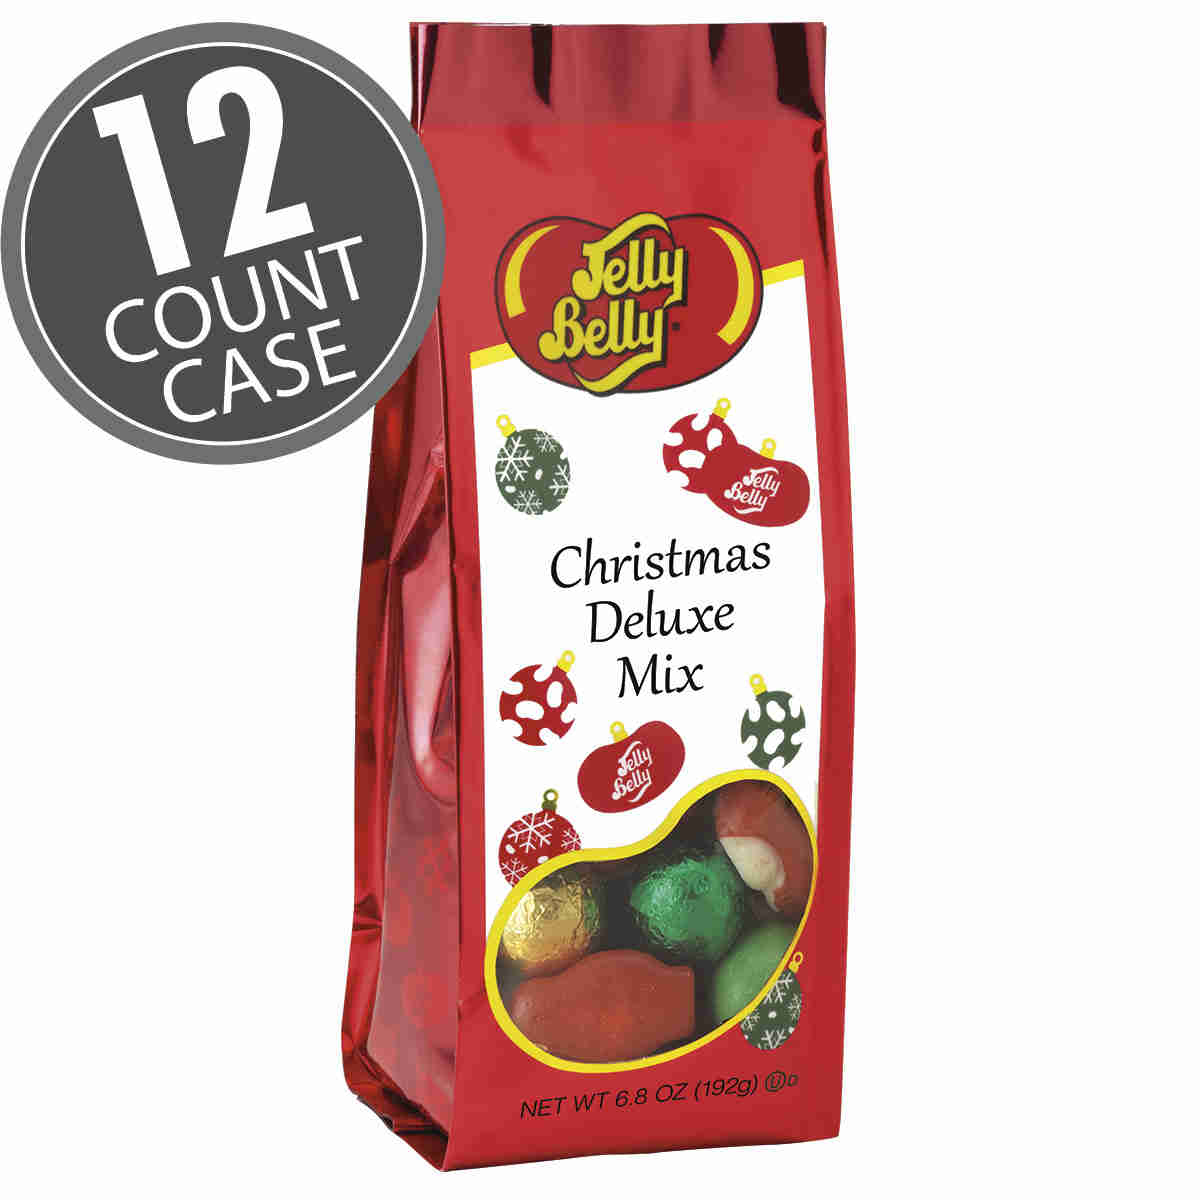 Christmas Deluxe Mix - 6.8 oz Gift Bags - 12-Count Case